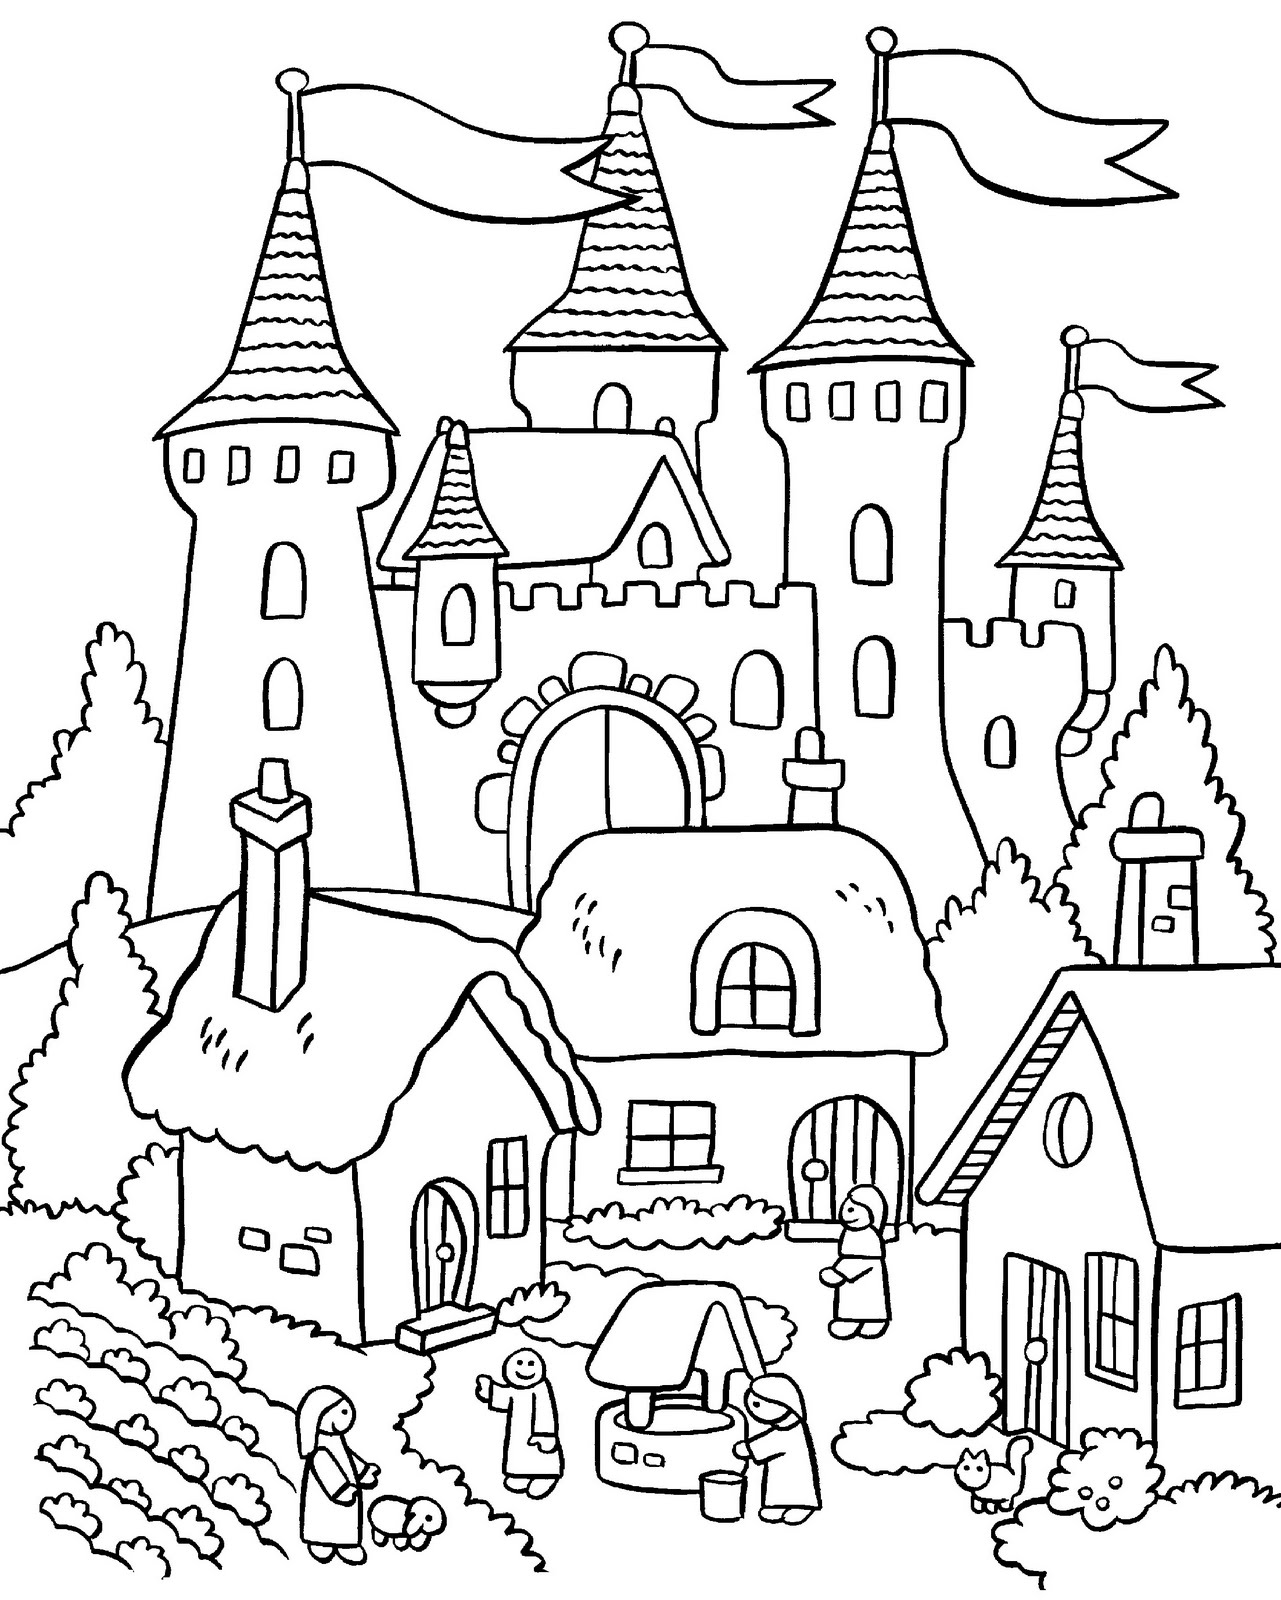 Garden coloring pages to download and print for free for Garden coloring page